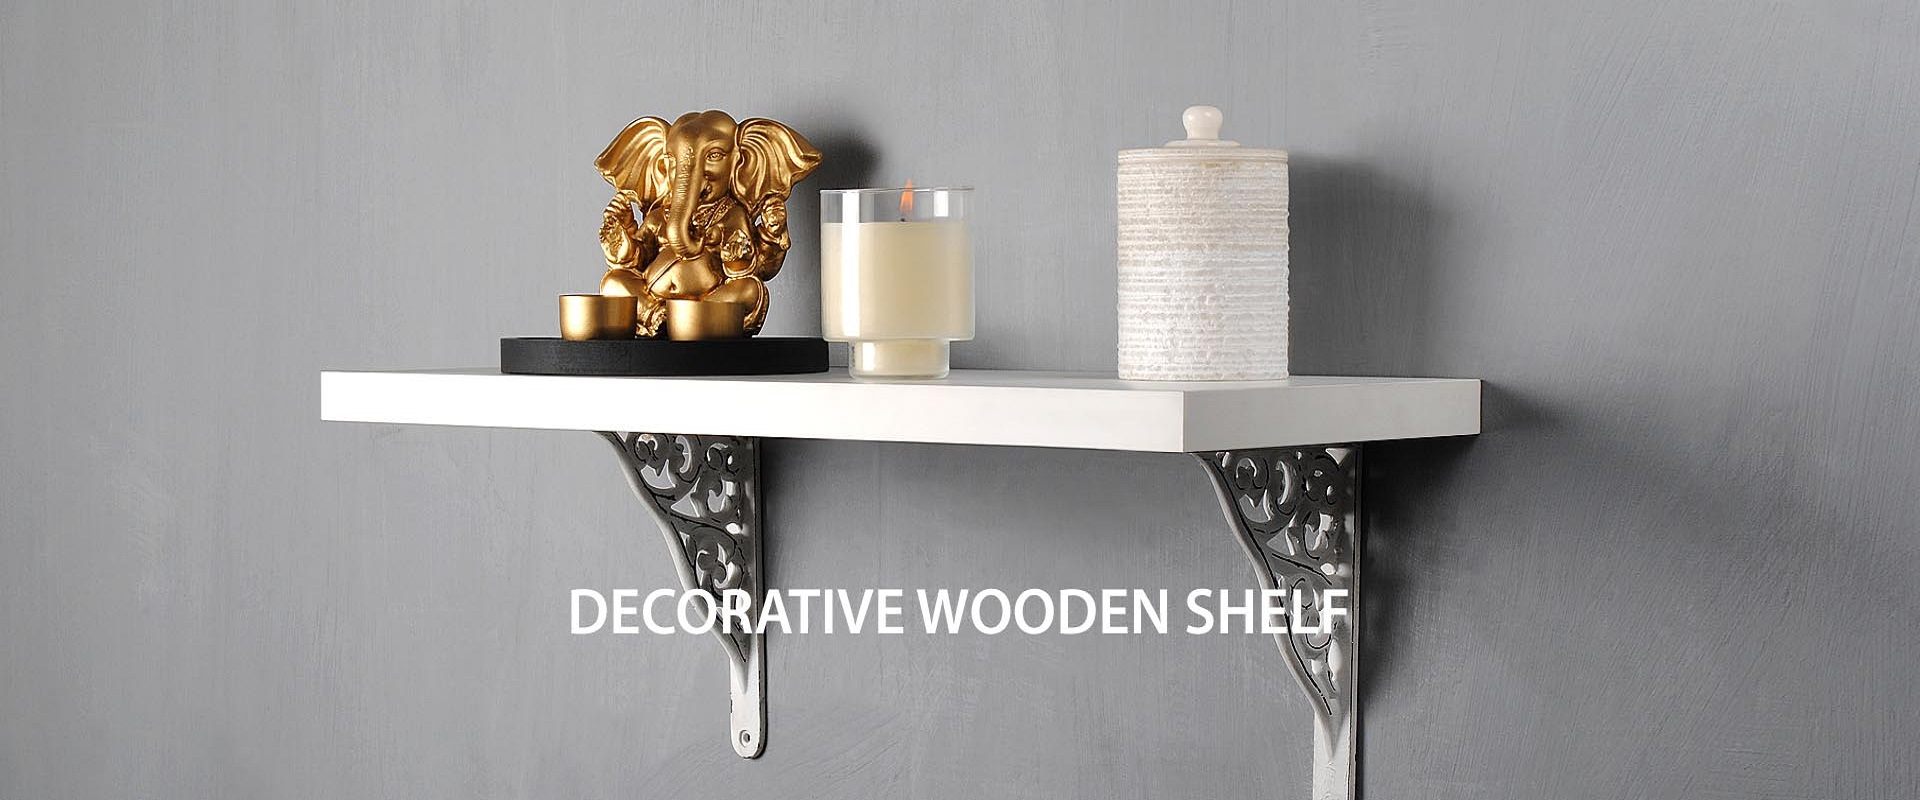 HOME_Page_Banners_Wooden-Shelf